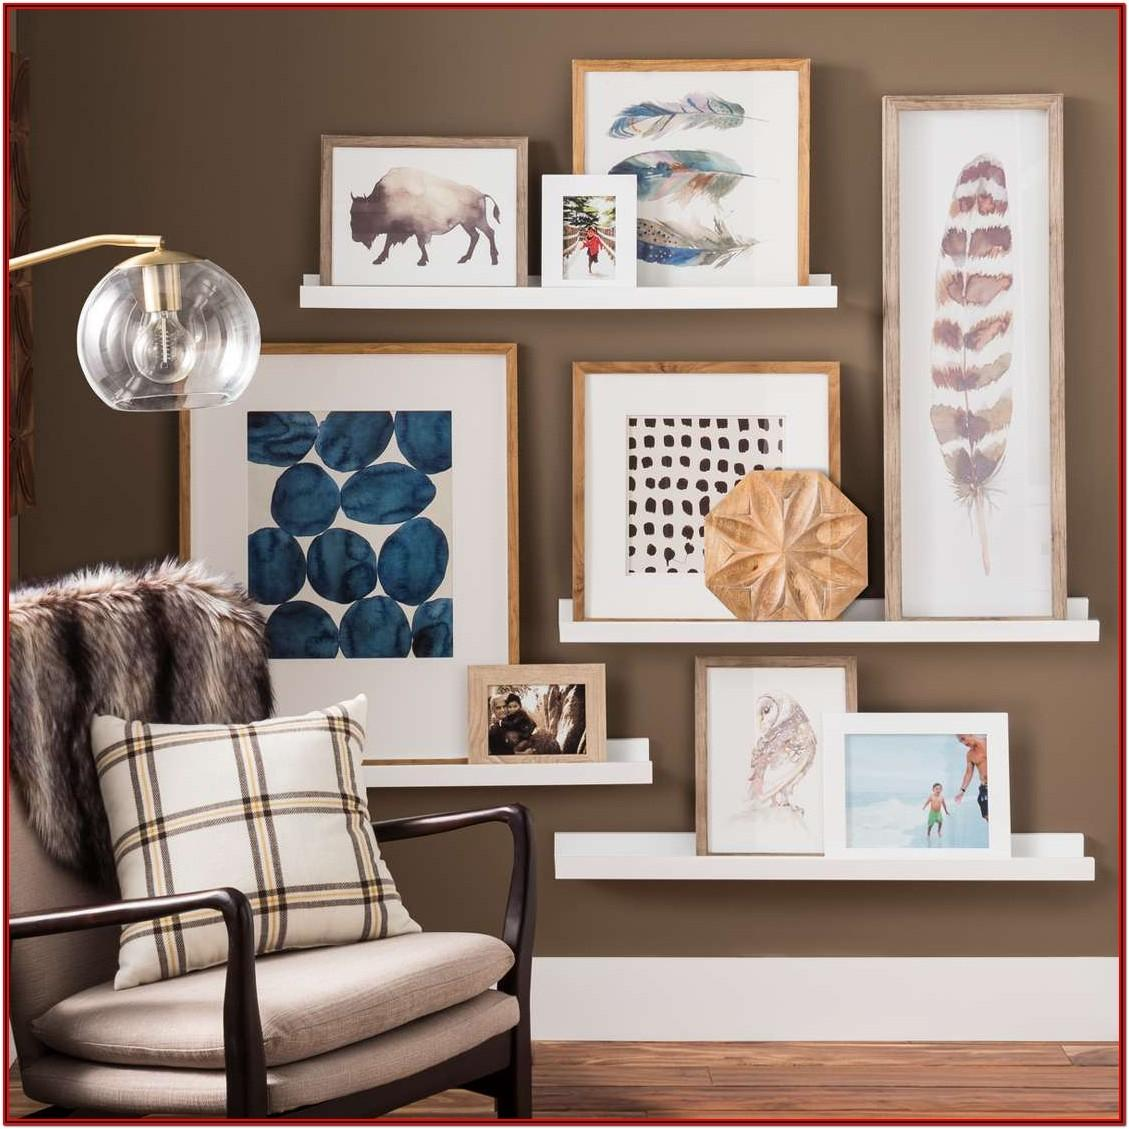 Living Room Wall Wall Shelves Ideas Gallery